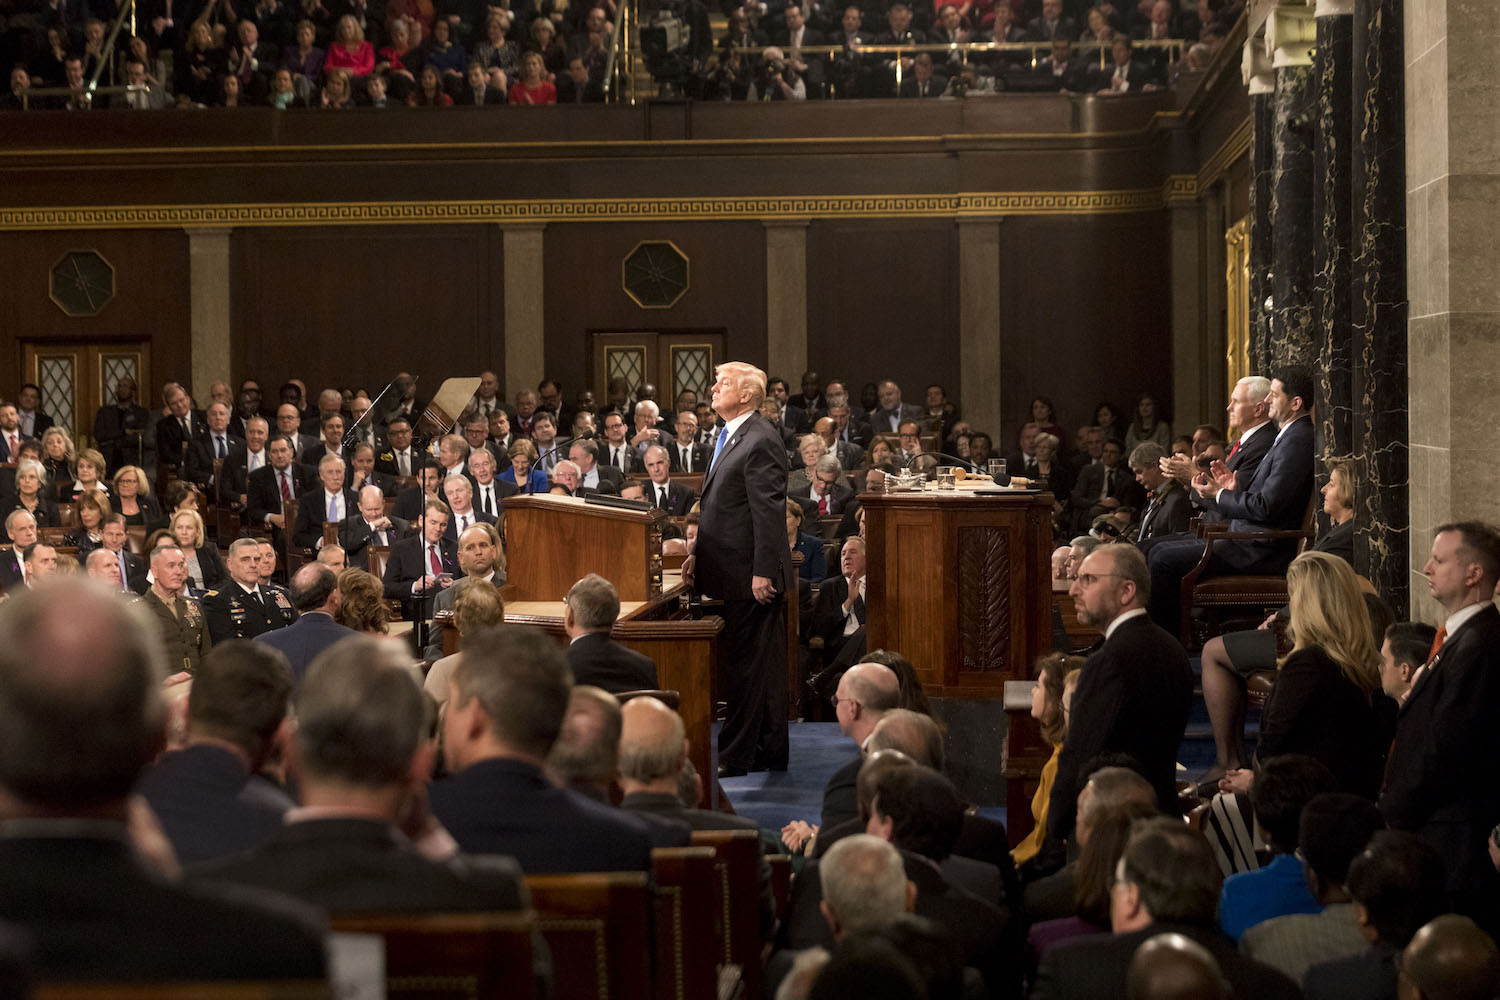 Mark Trahant: Eleven disturbing words from the State of the Union